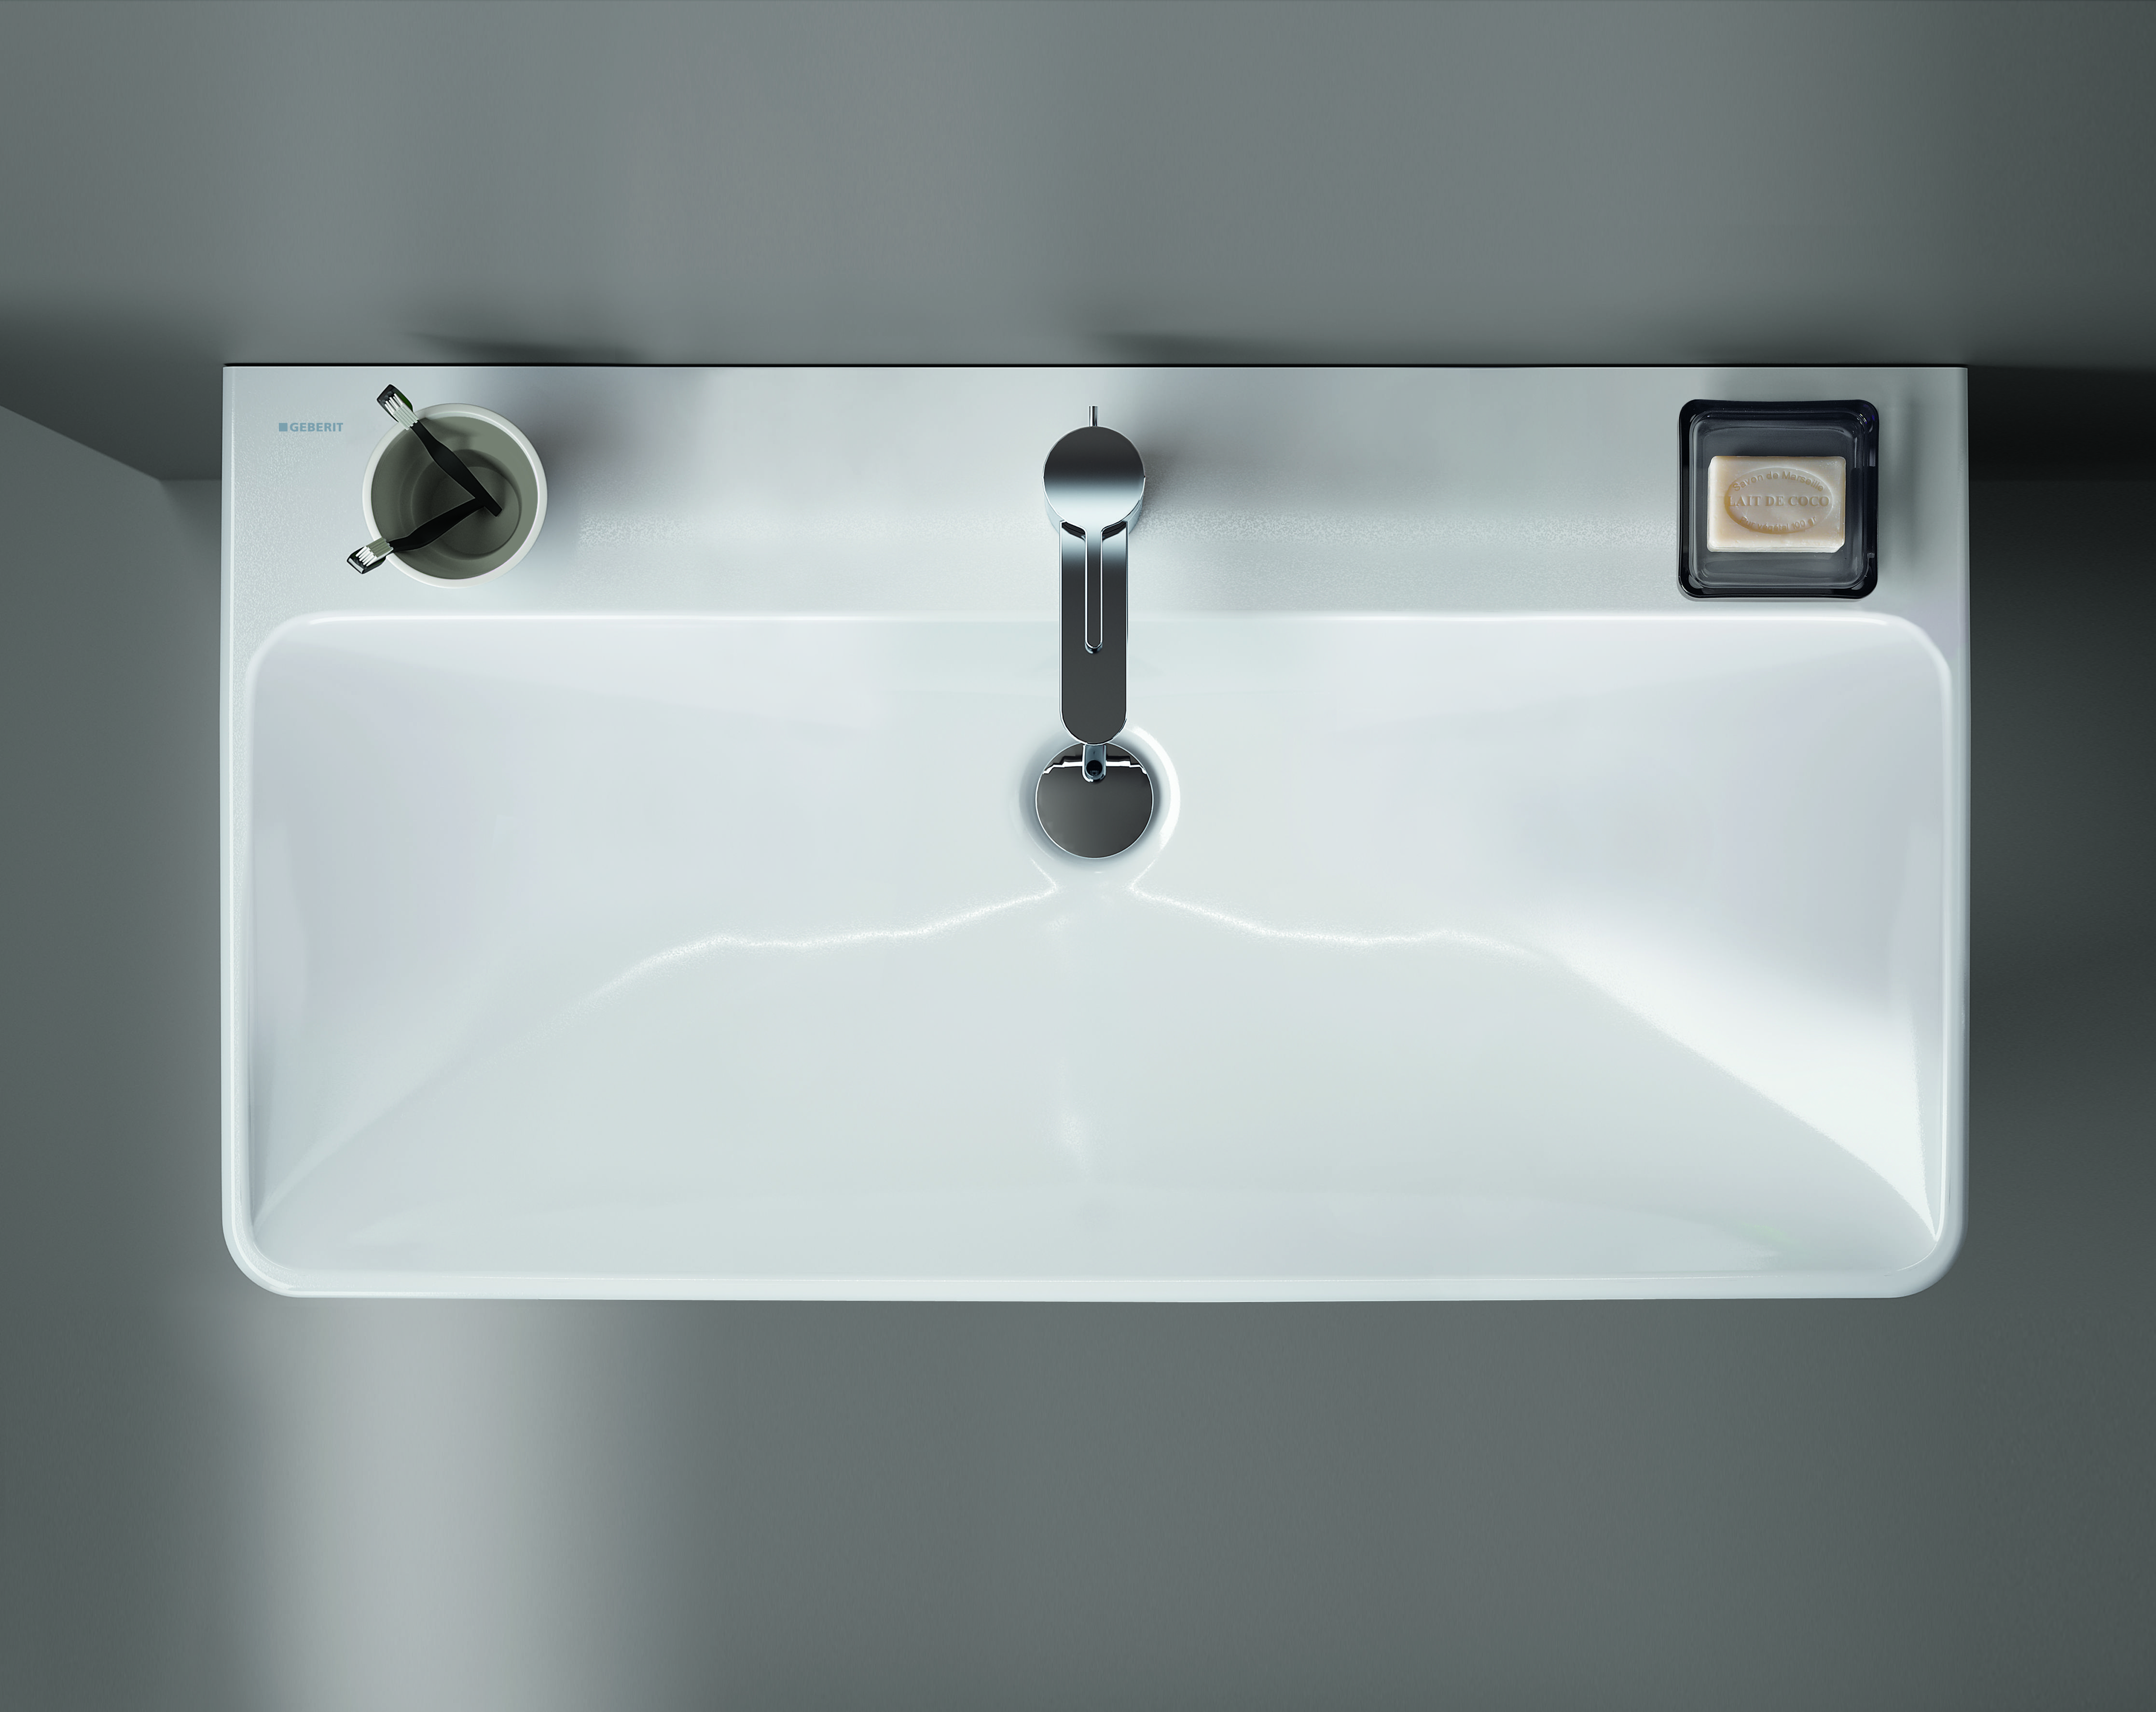 Lightweight in appearance, the Geberit Smyle series stands out in ...